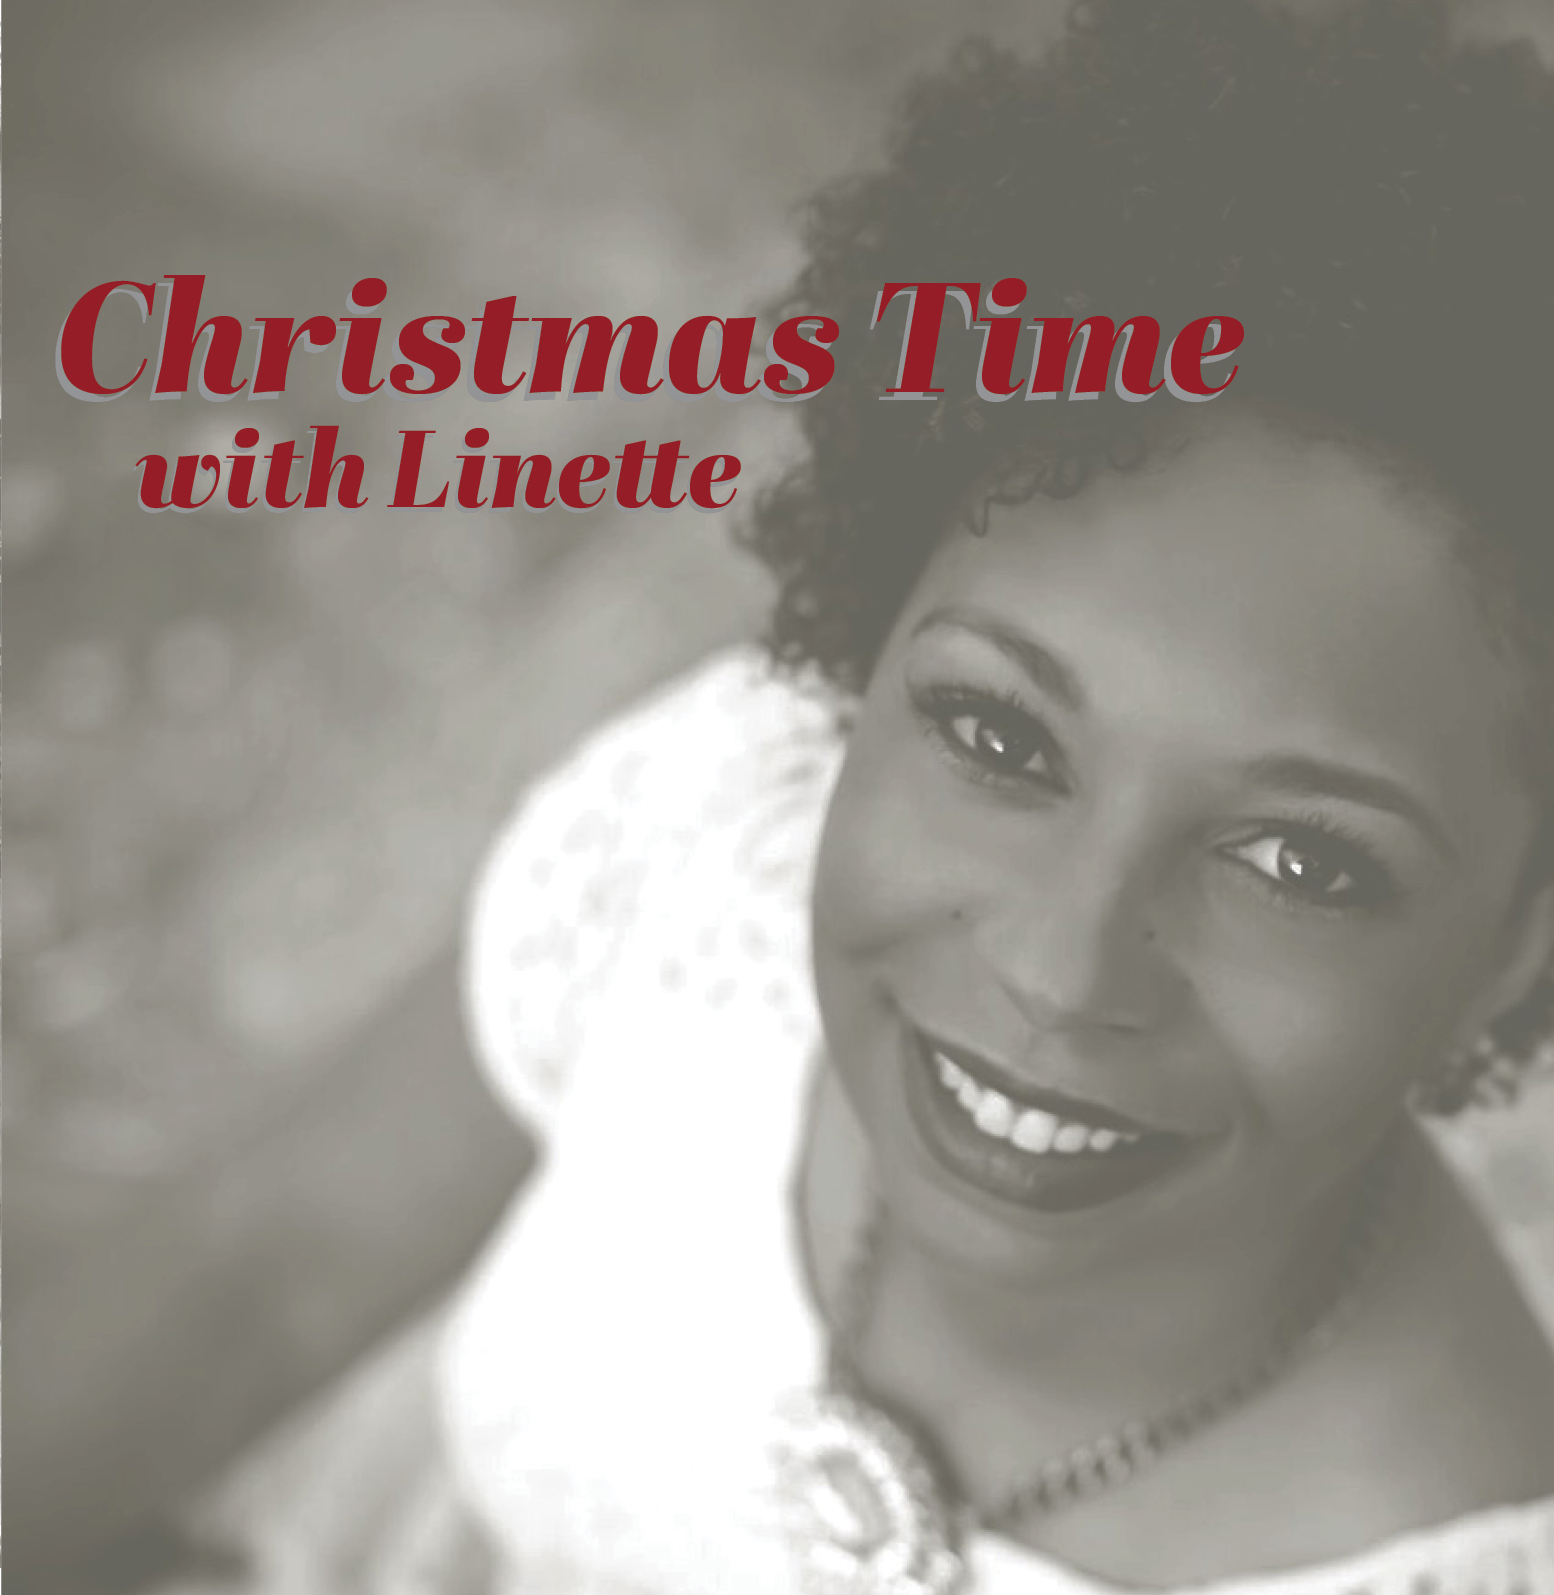 CD Cover for Linette Colwell Christmas EP - Front